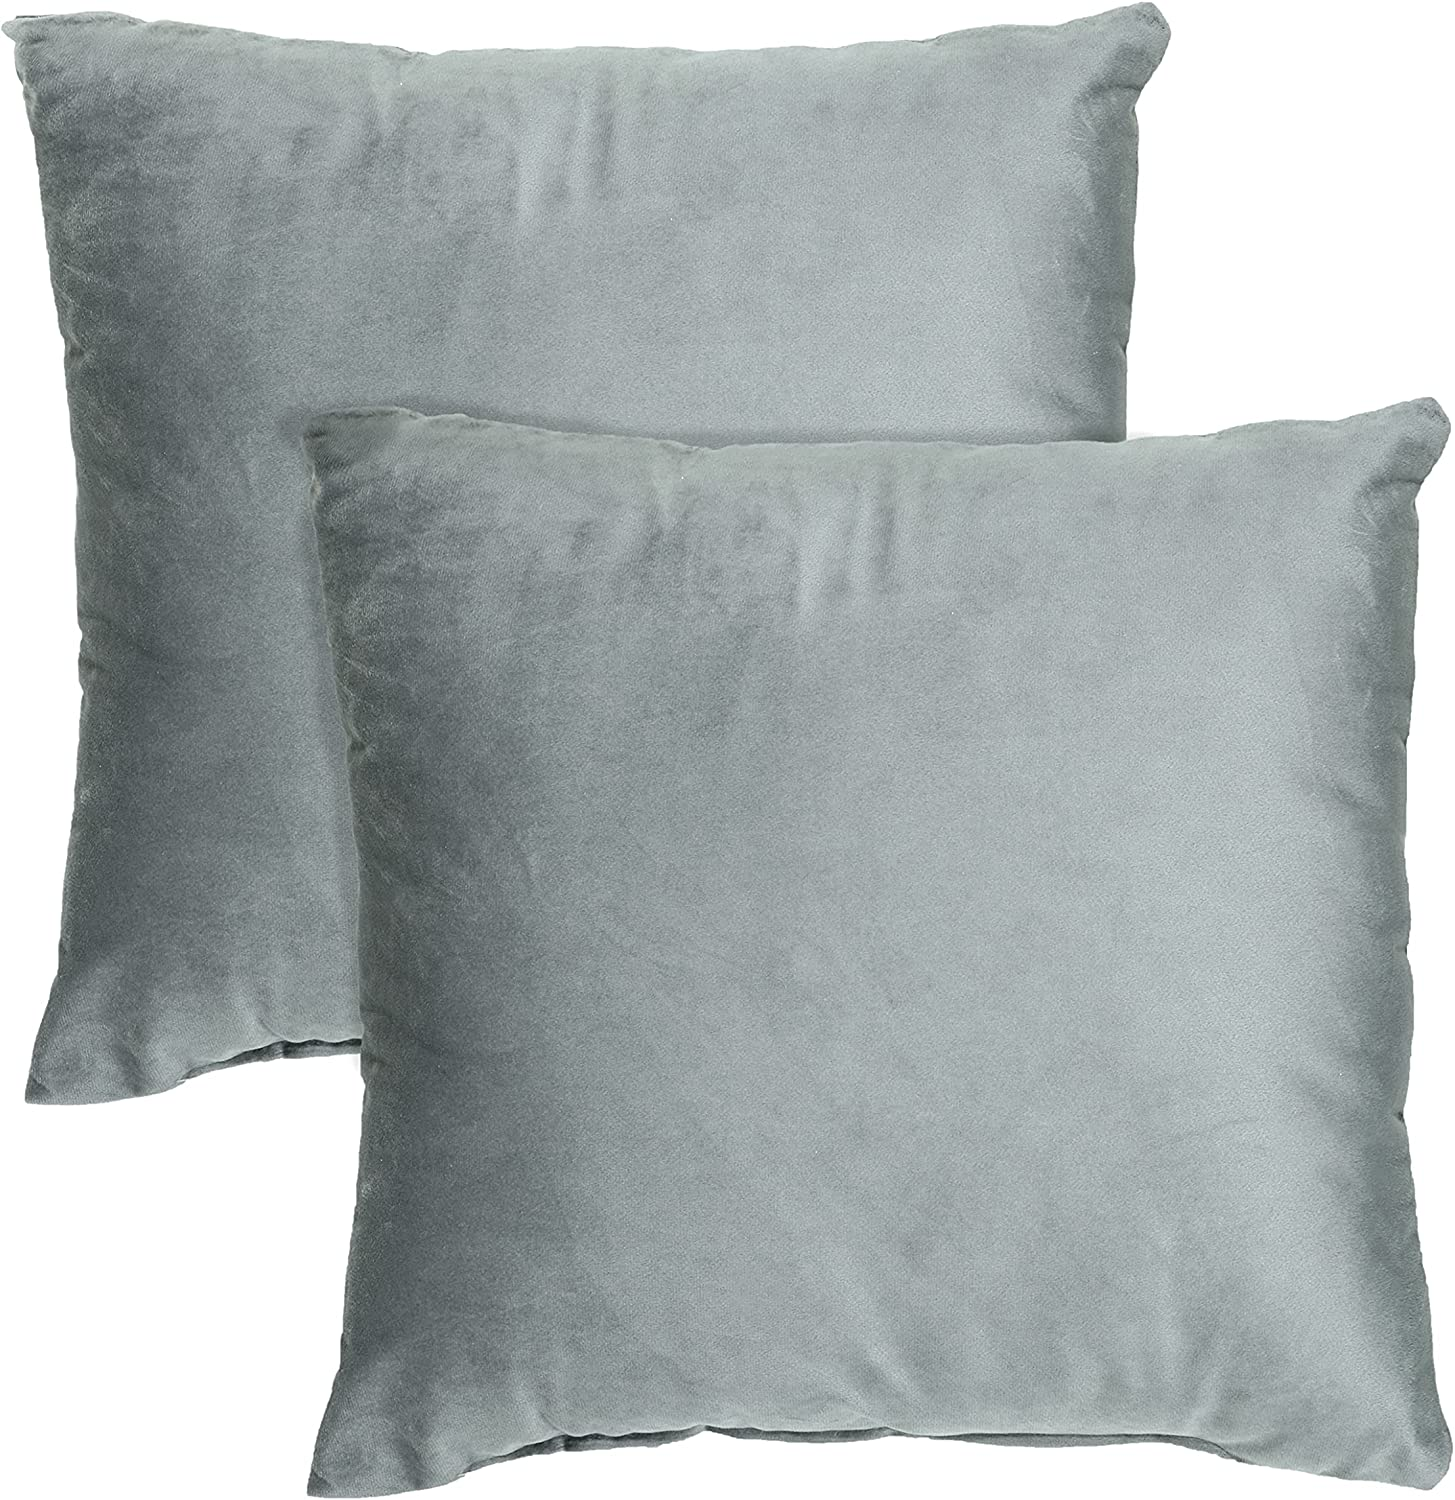 Tex Trend - Inserts Included Decorative Throw Pillows Velvet Solid Pillow Cushions for Bed Sofa Couch Chair Car - ( Grey -18x18 Inch, Pack of 2)